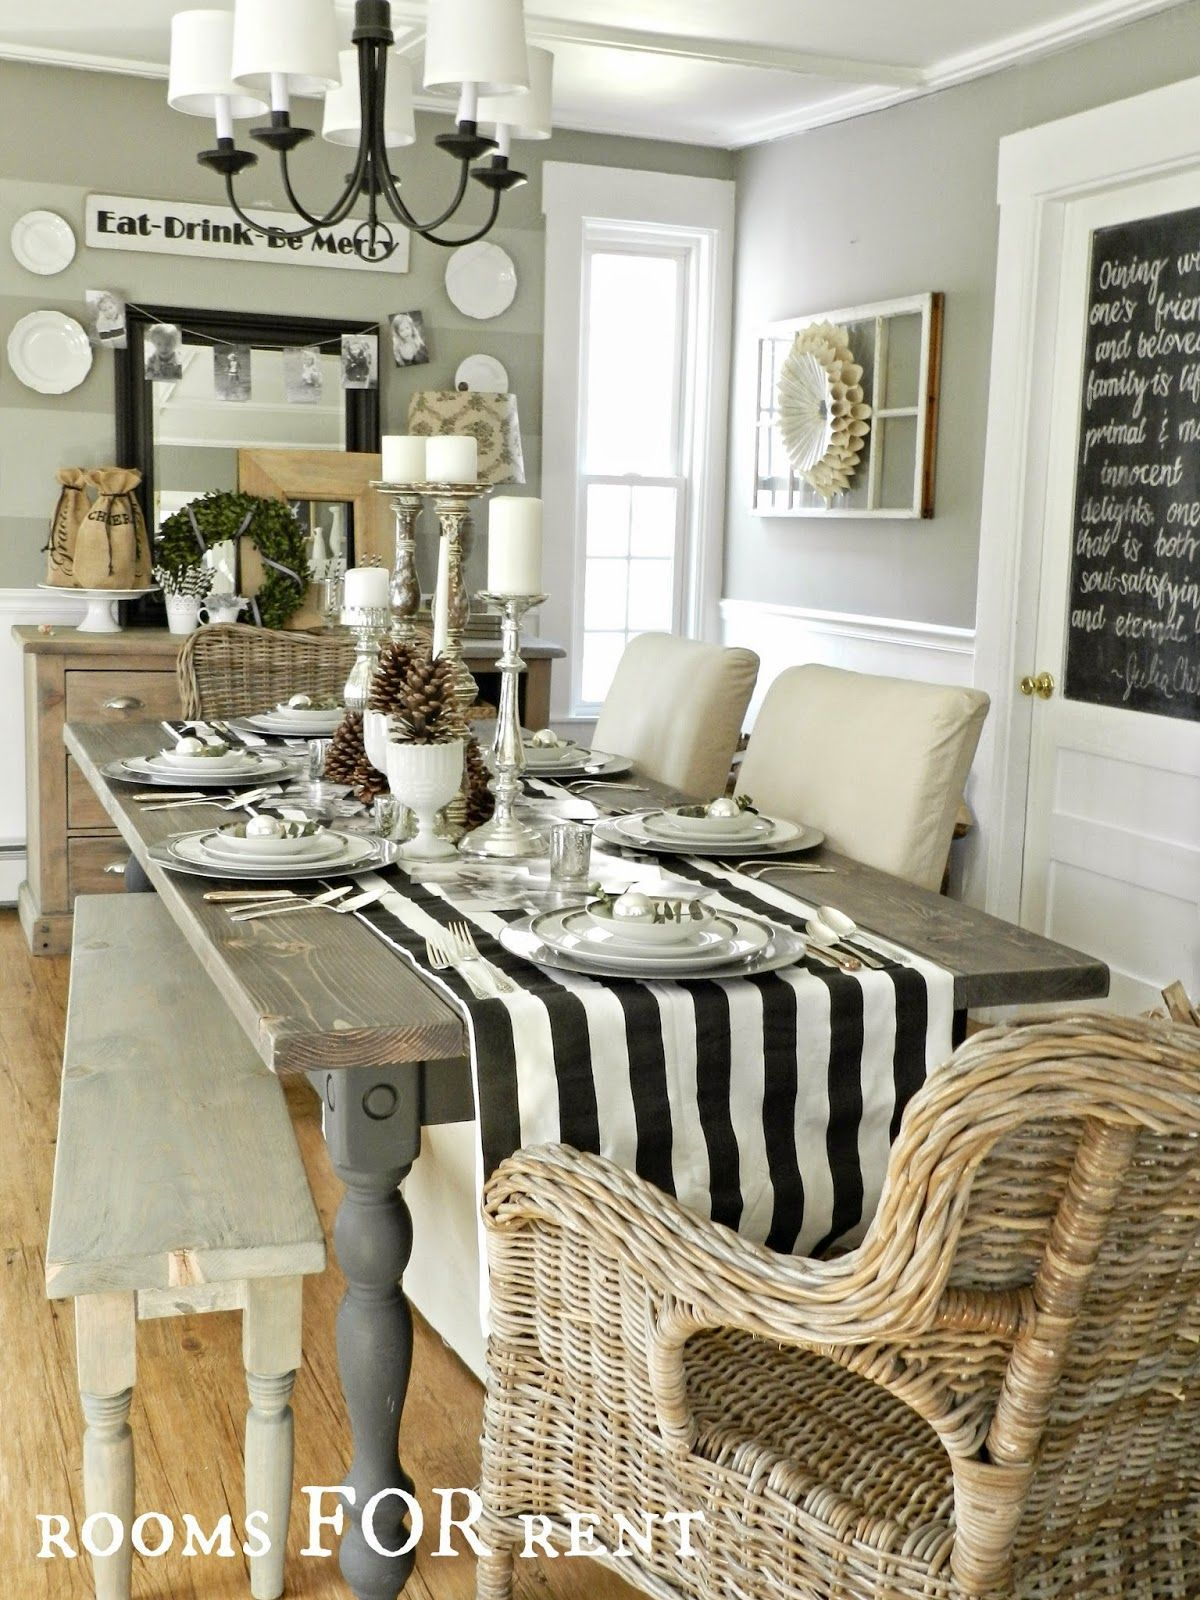 Room For Rent Design: Holiday Entertaining (~rooms FOR Rent~)